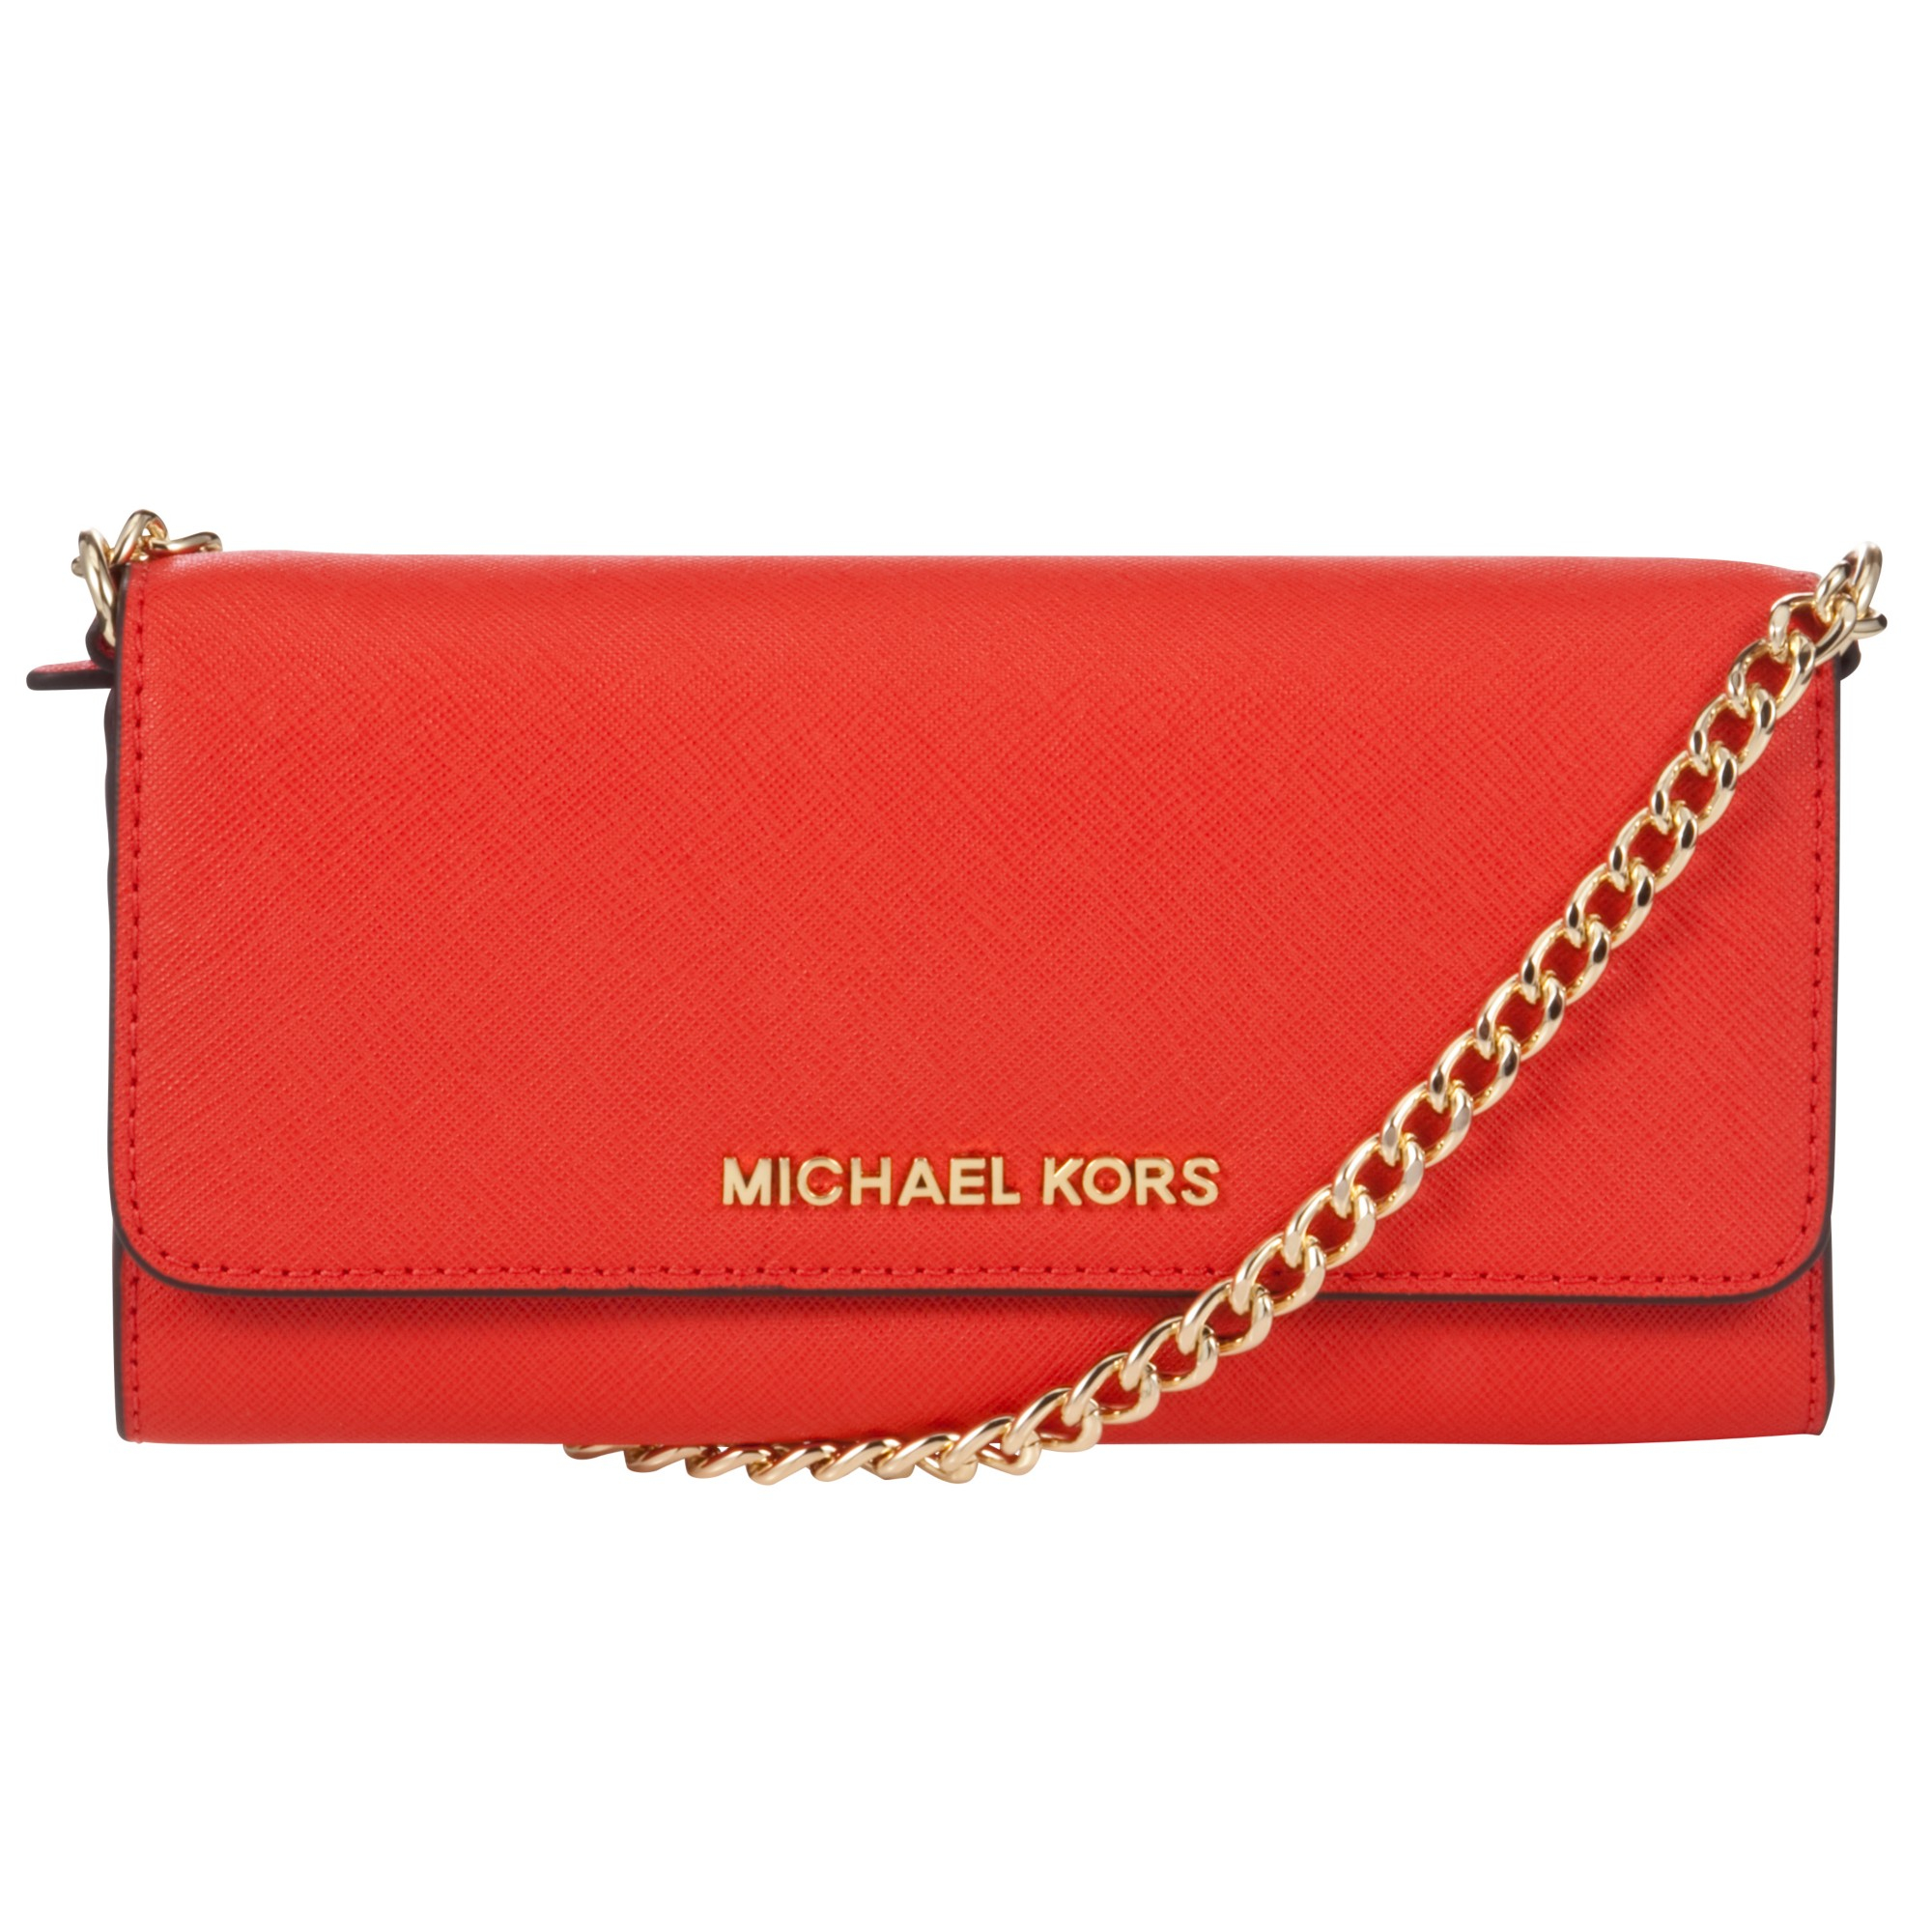 833afb5693df ... inexpensive michael kors jet set travel saffiano leather chain wallet  in e1a85 734e9